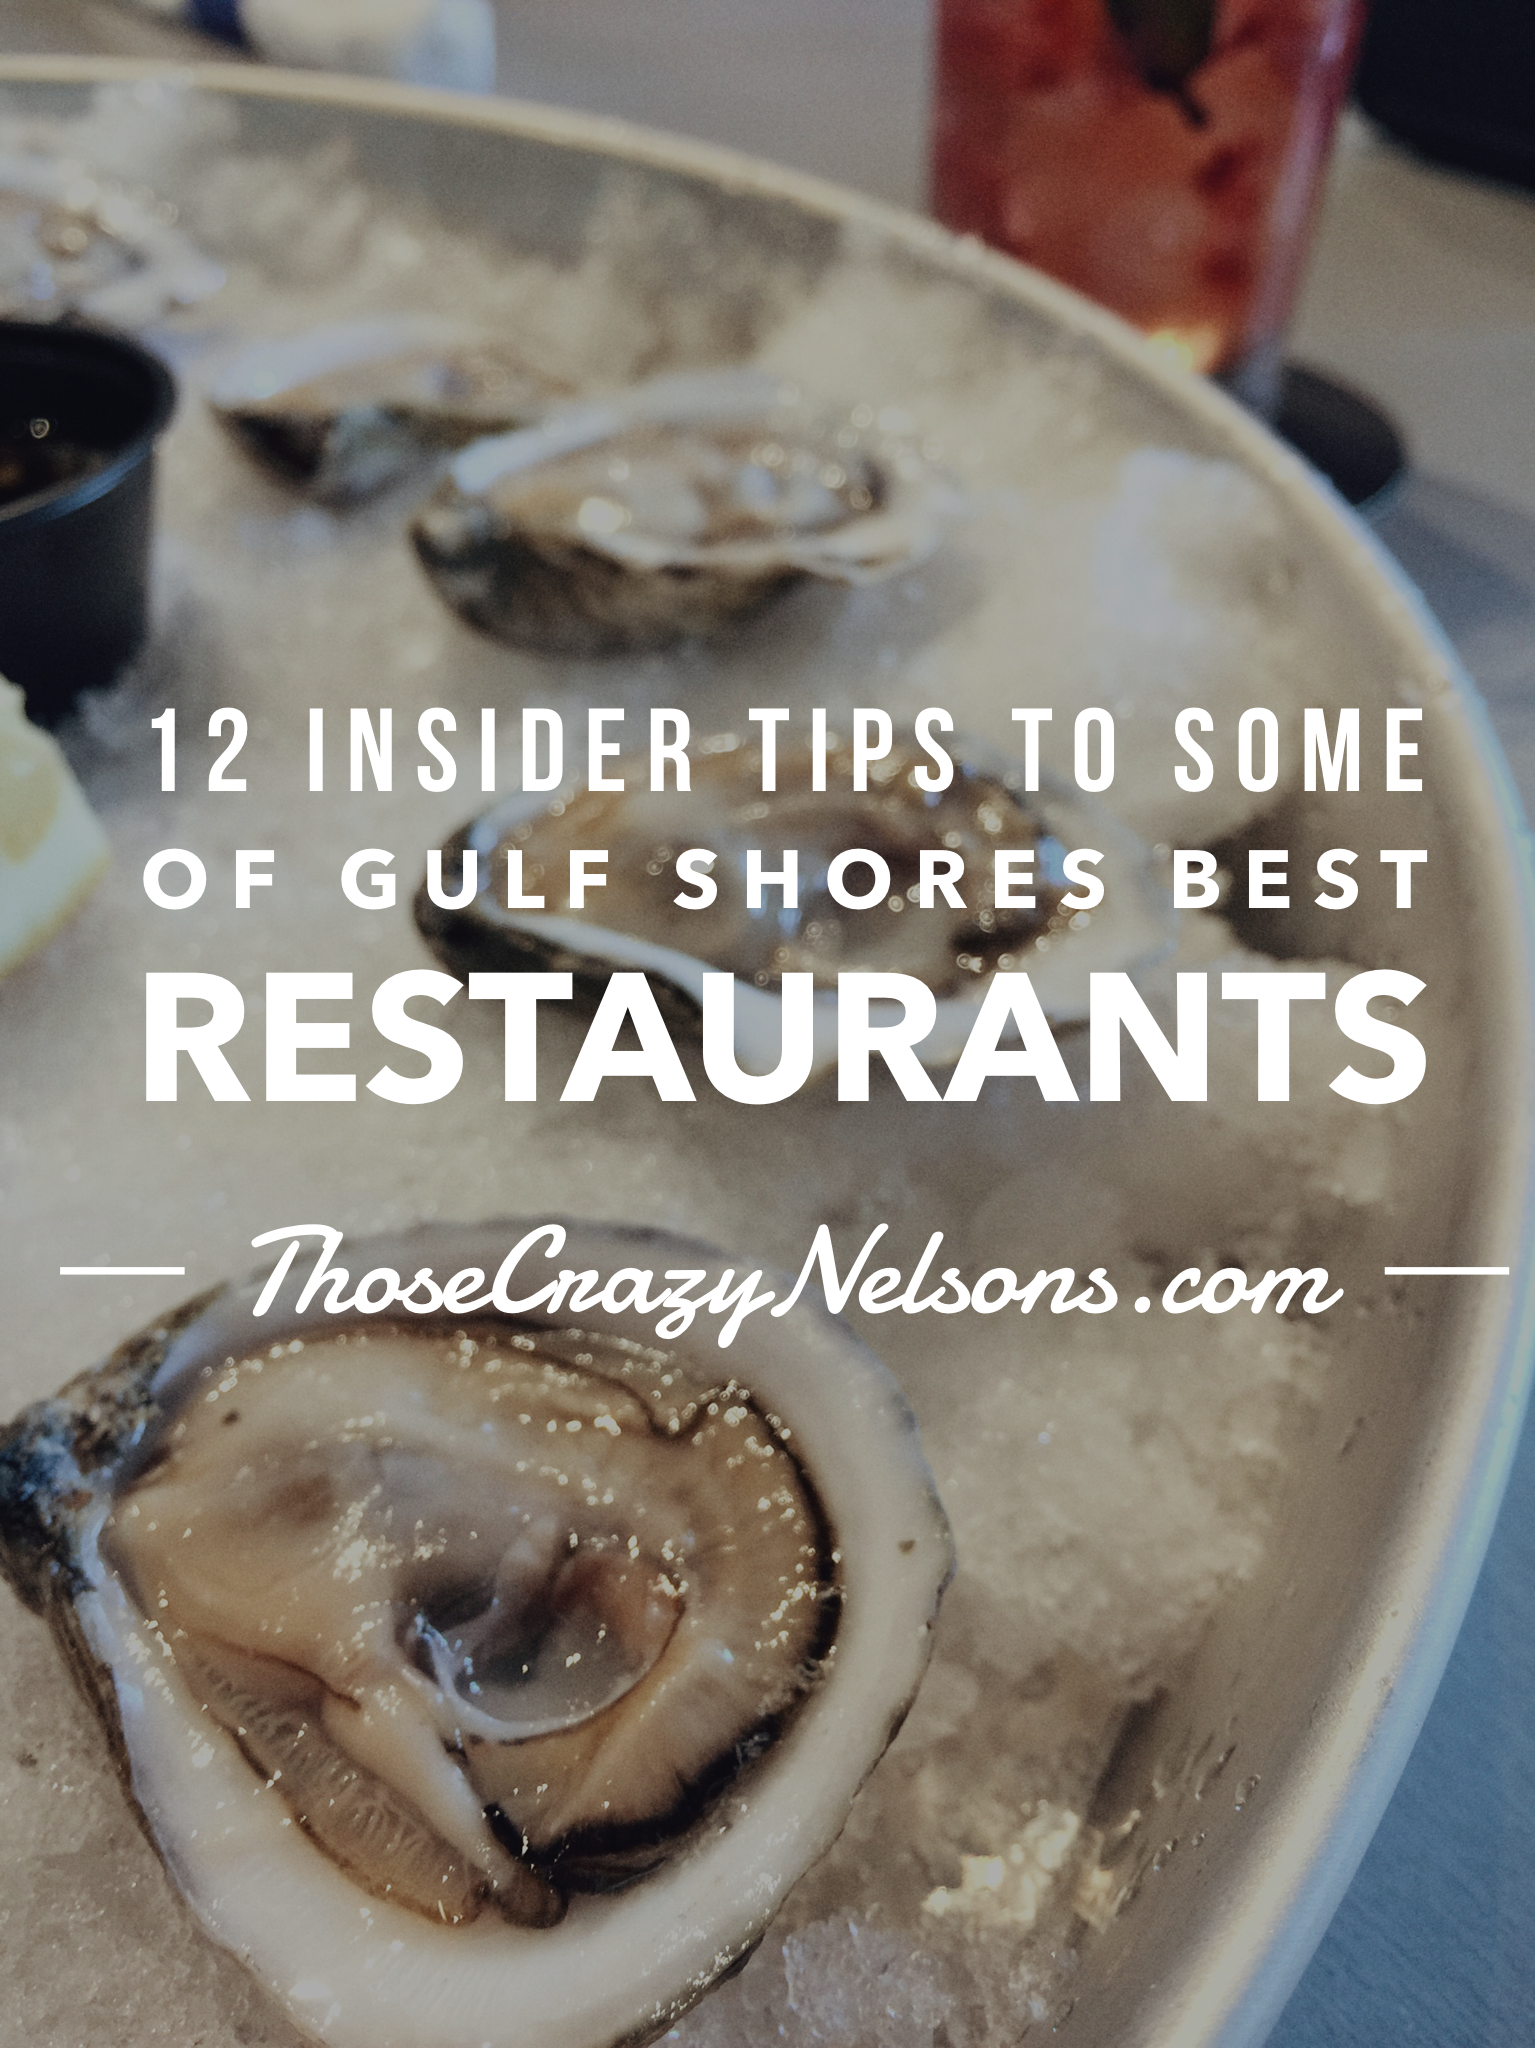 These tips will help give you the best Gulf Shores eating experience! #weekendtrips #gulfshores #foodie